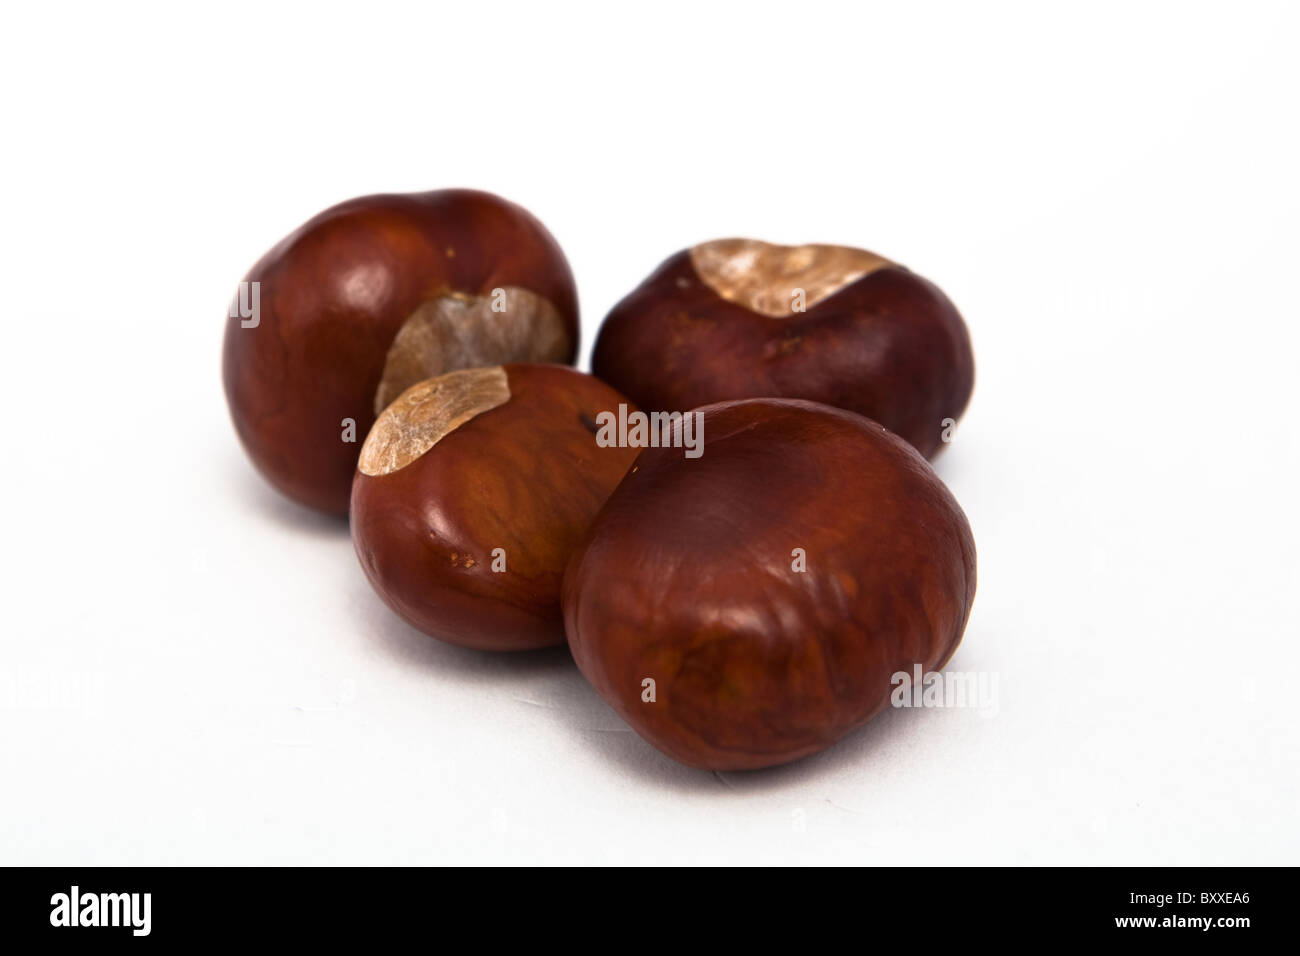 Four conkers - Stock Image